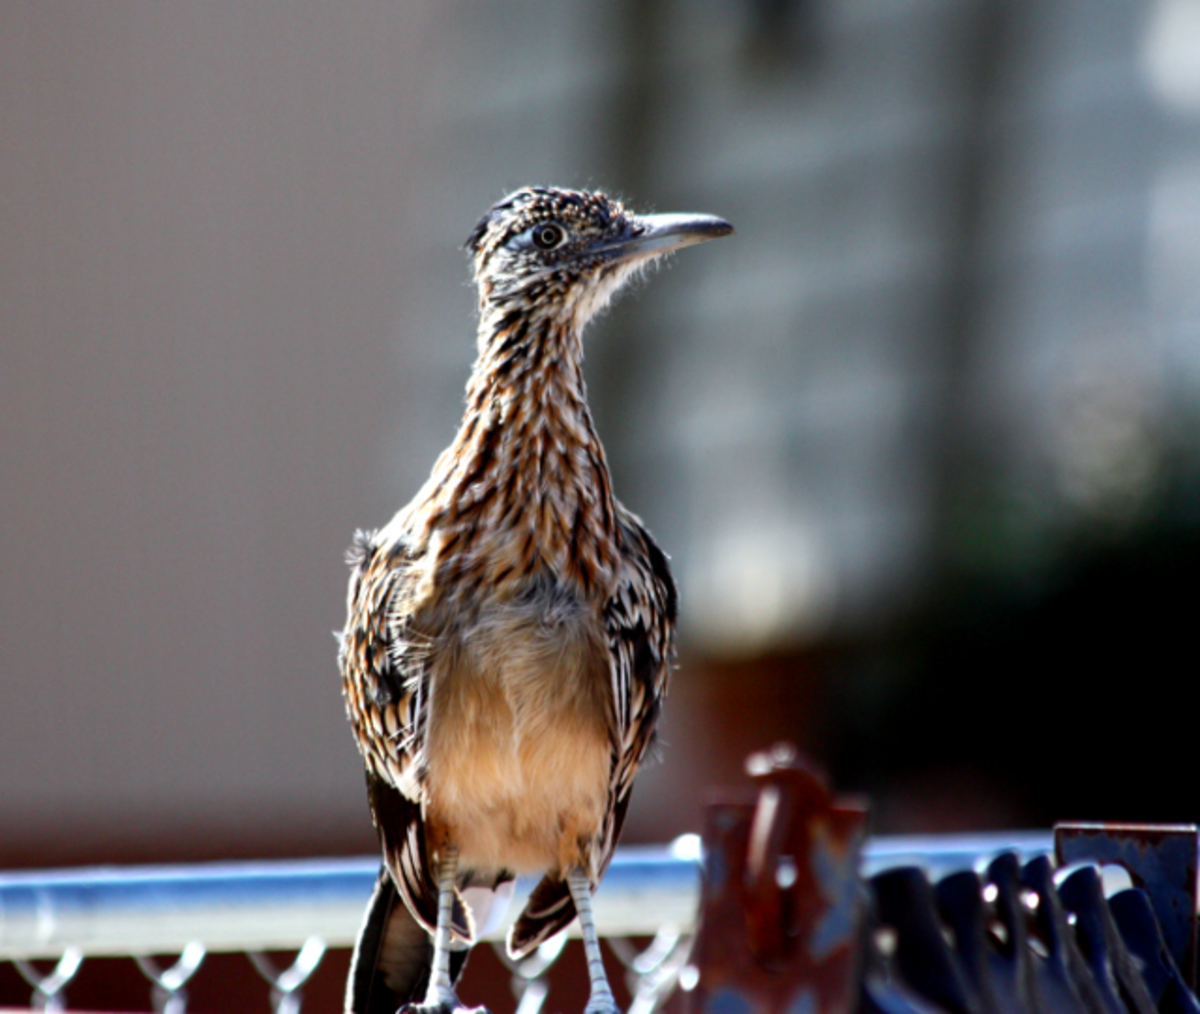 Greater Roadrunner perched on a fence.